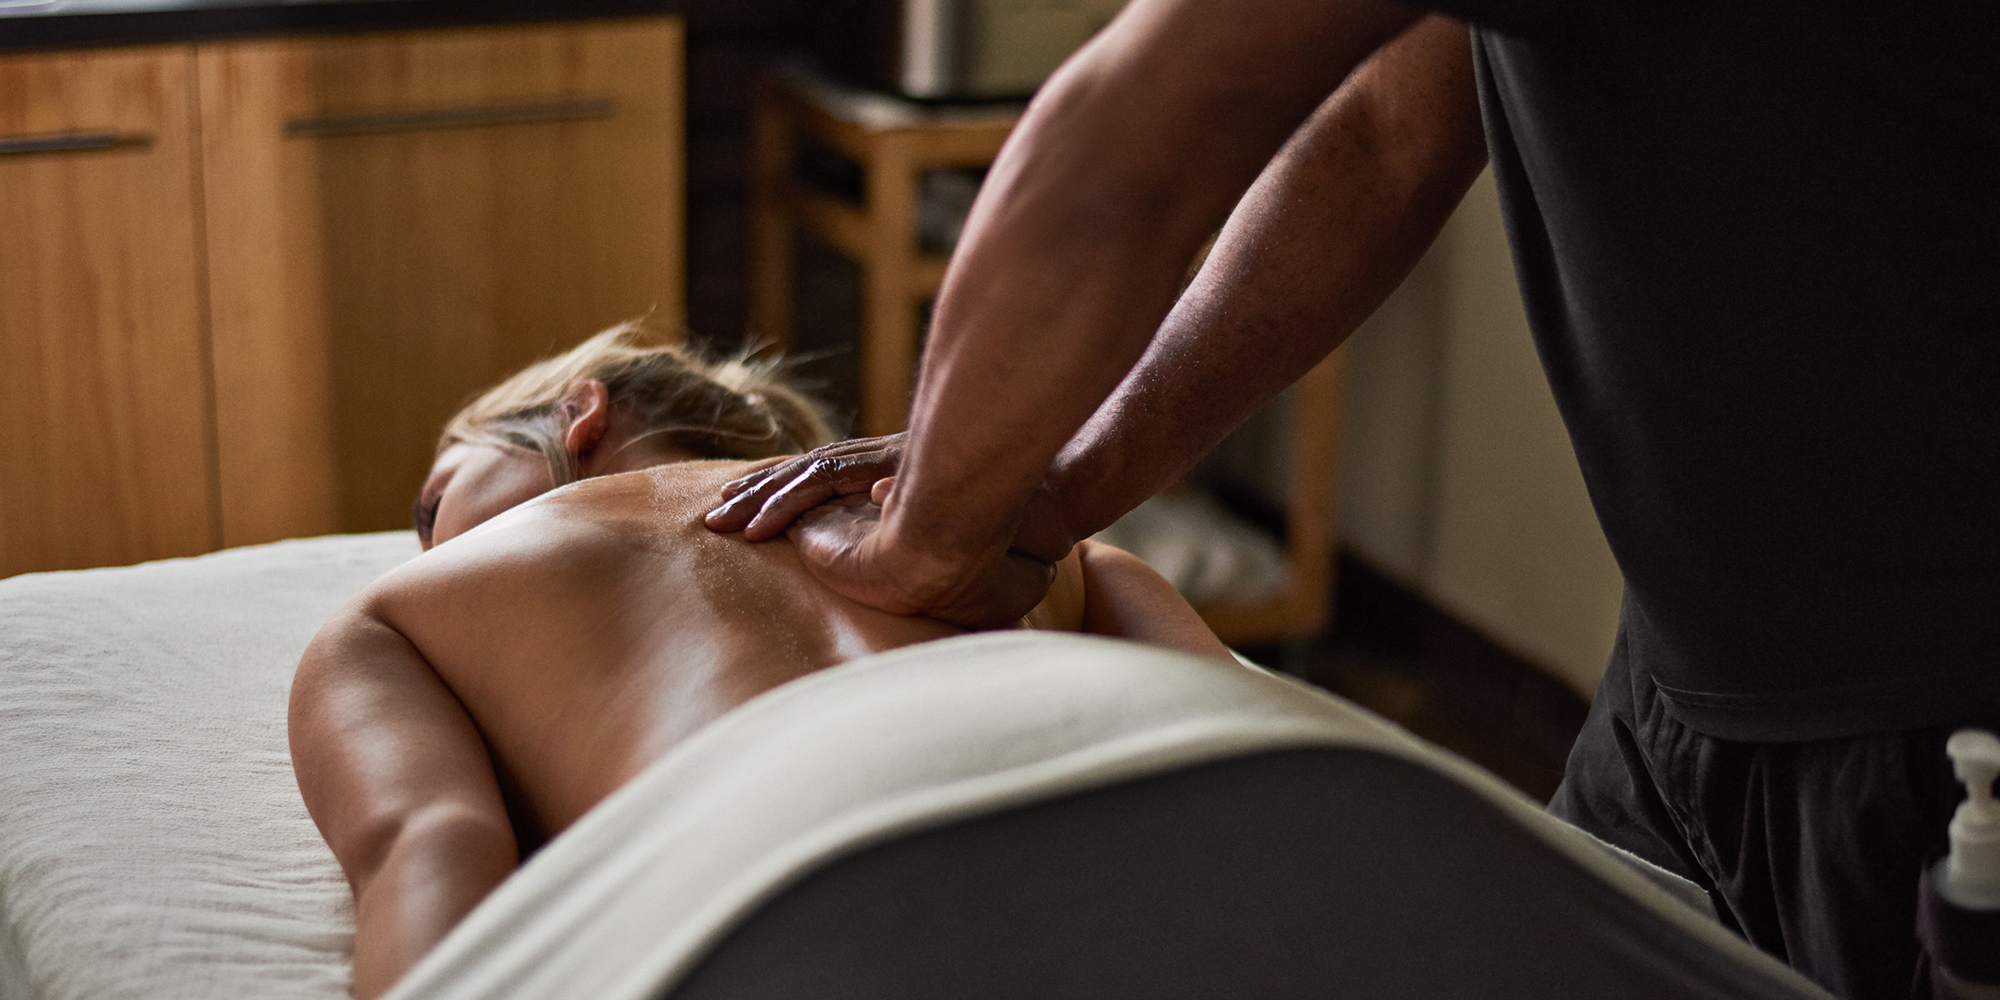 Massage and the Wellness Model